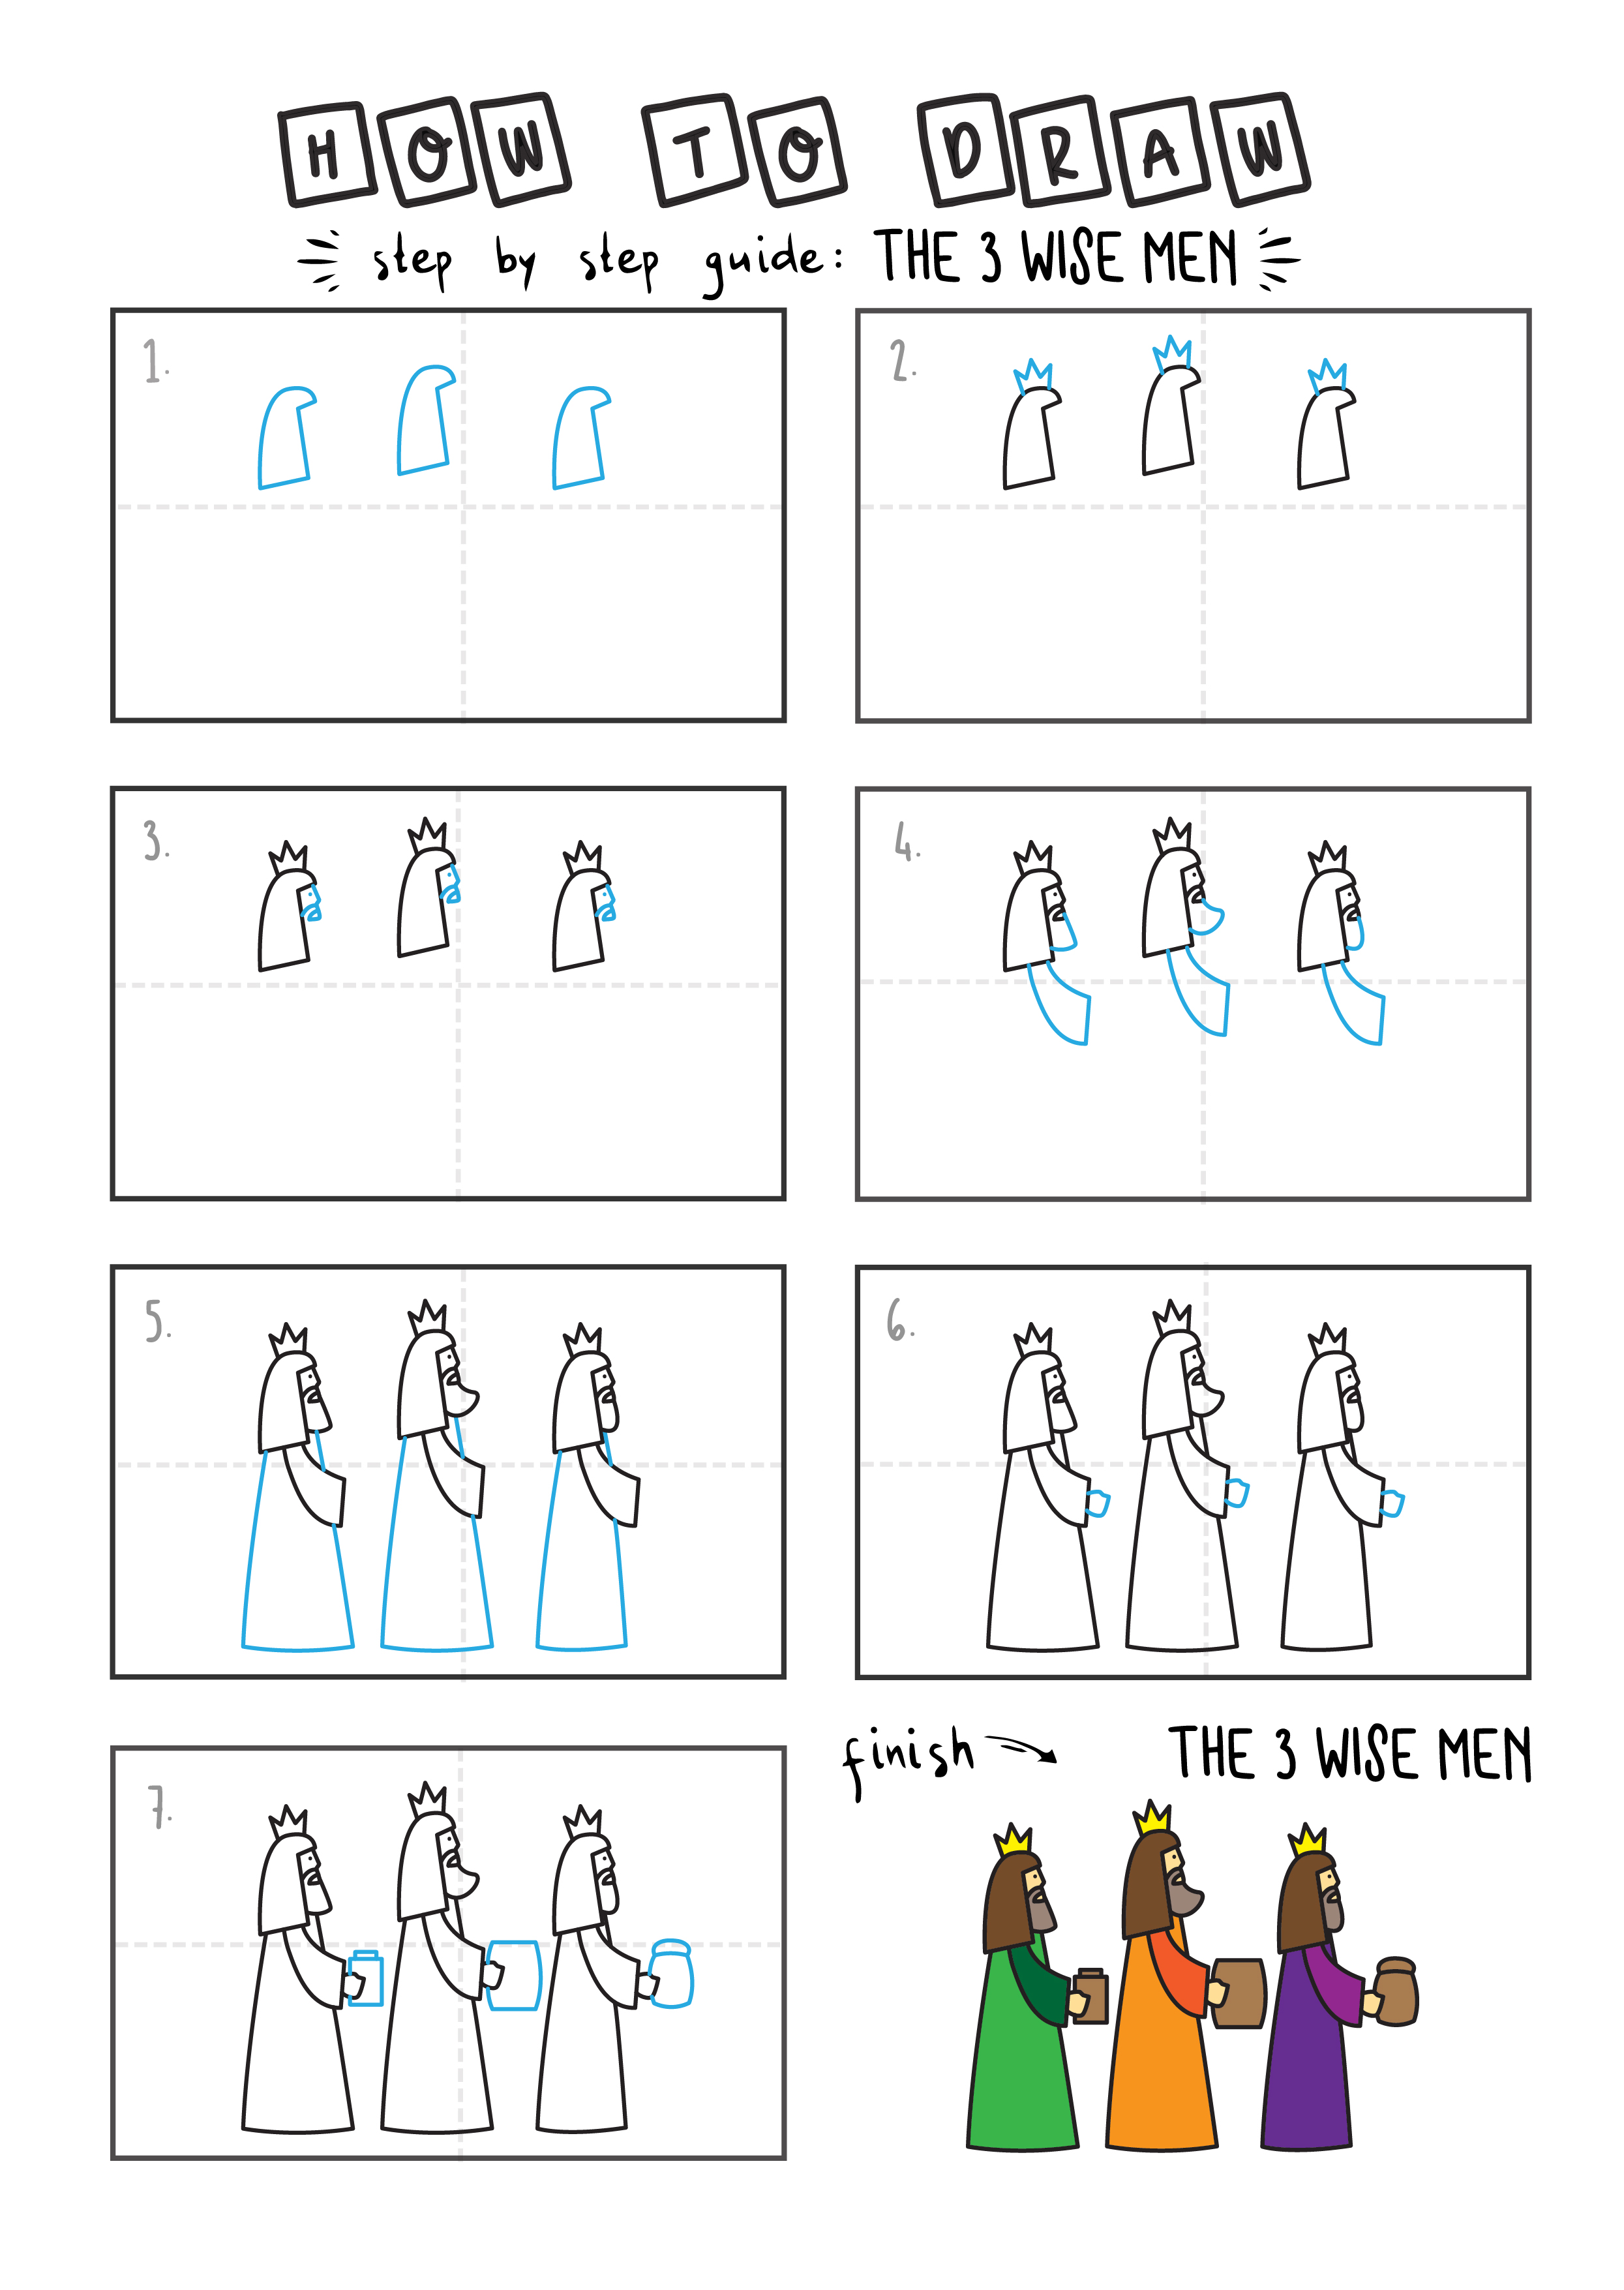 How To Draw 3 WISE MEN CHRISTIAN BIBLE By Step For Kids Easy Illustration Doodle Drawing GUIDE 2